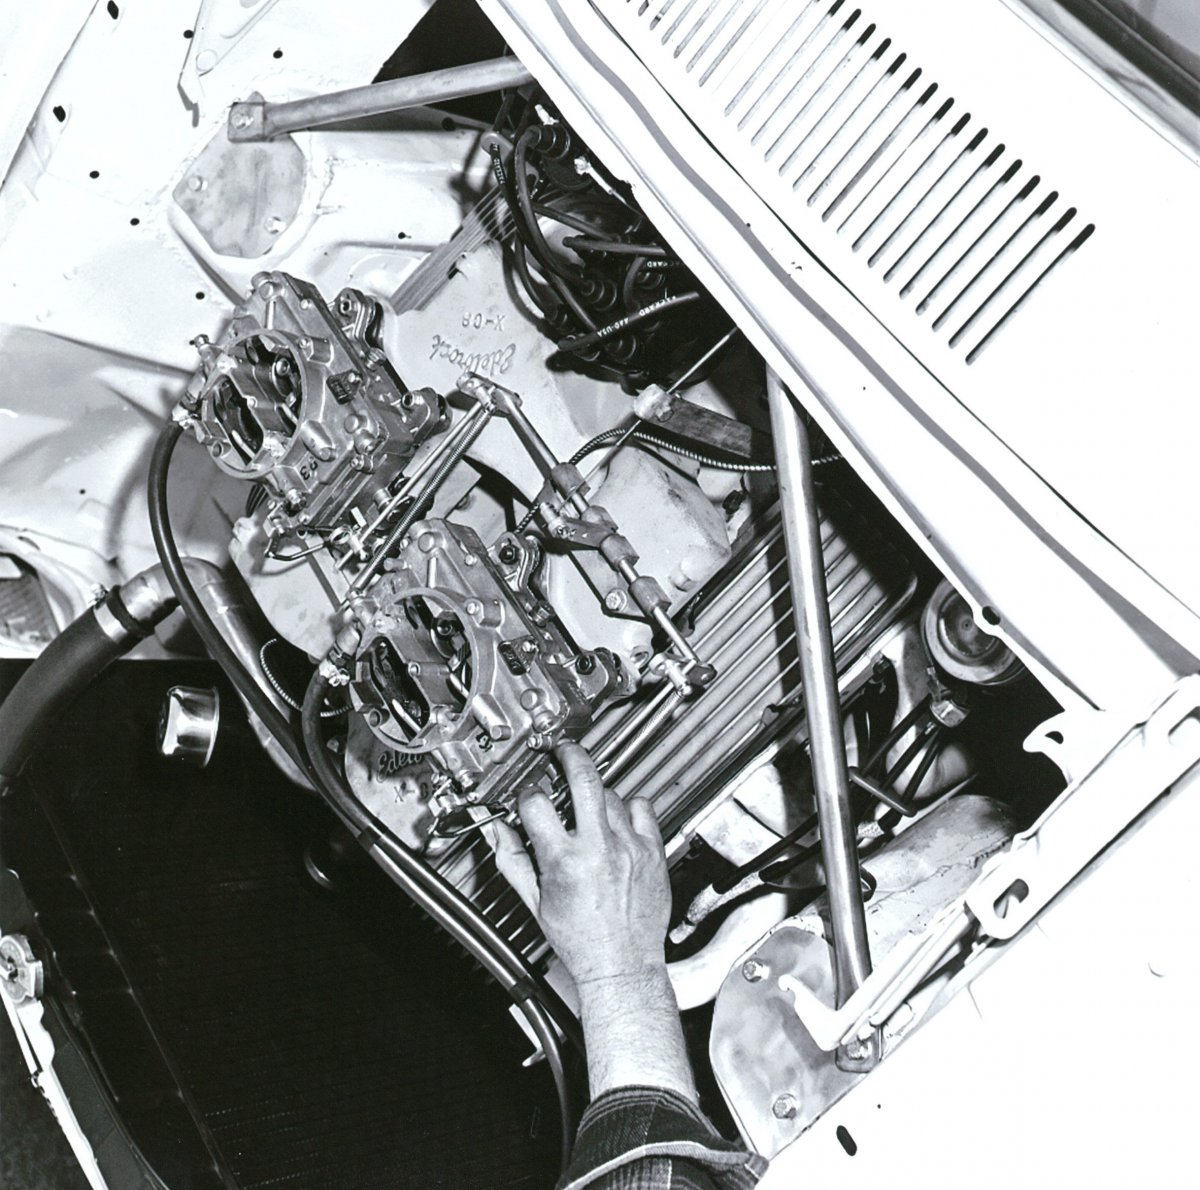 1964 AFX Comet-Hairy Canary Construction Photos0010.jpg